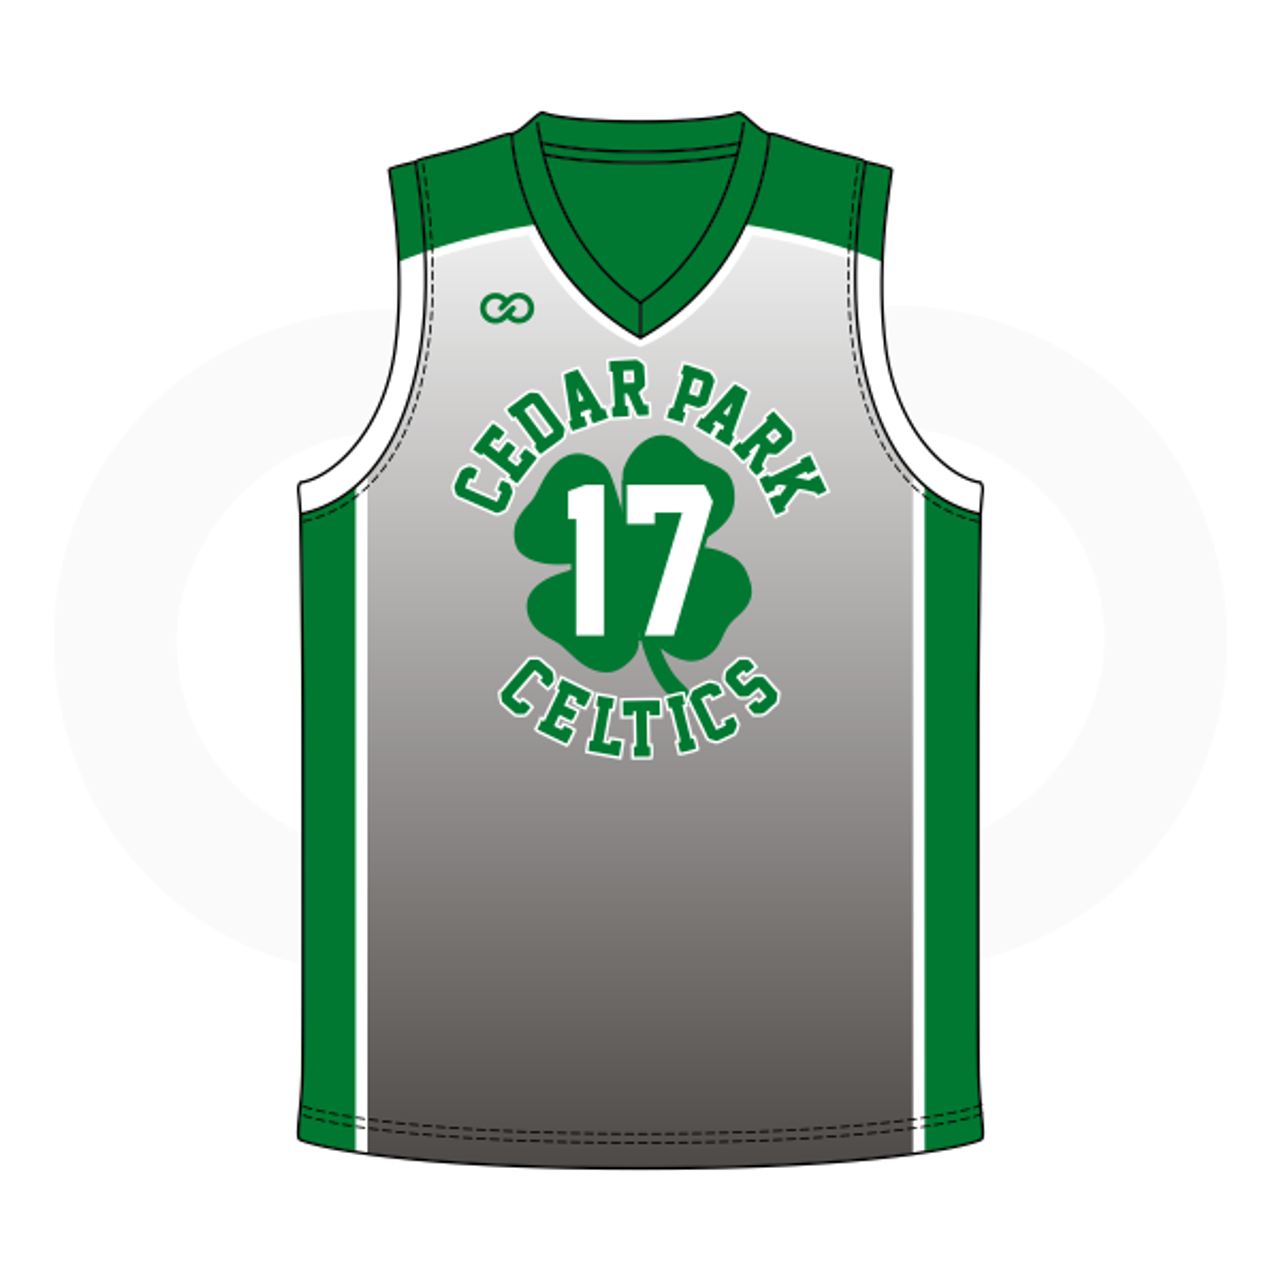 half off 22563 a5c71 Cedar Celtics Basketball Grey Jersey